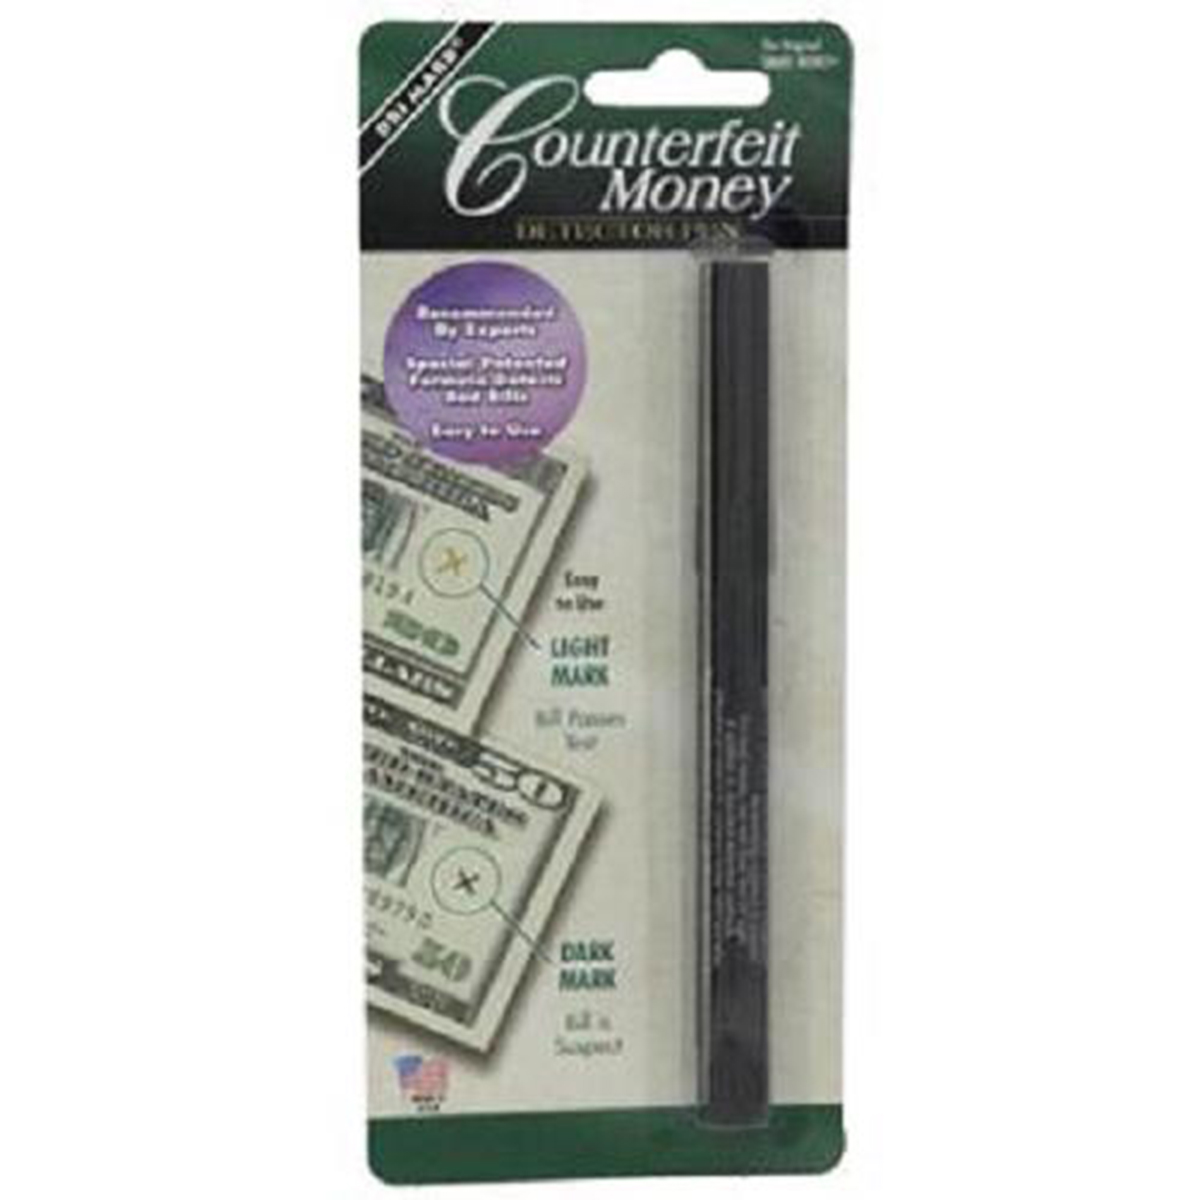 MMF Industries Counterfeit Money Detector Pen